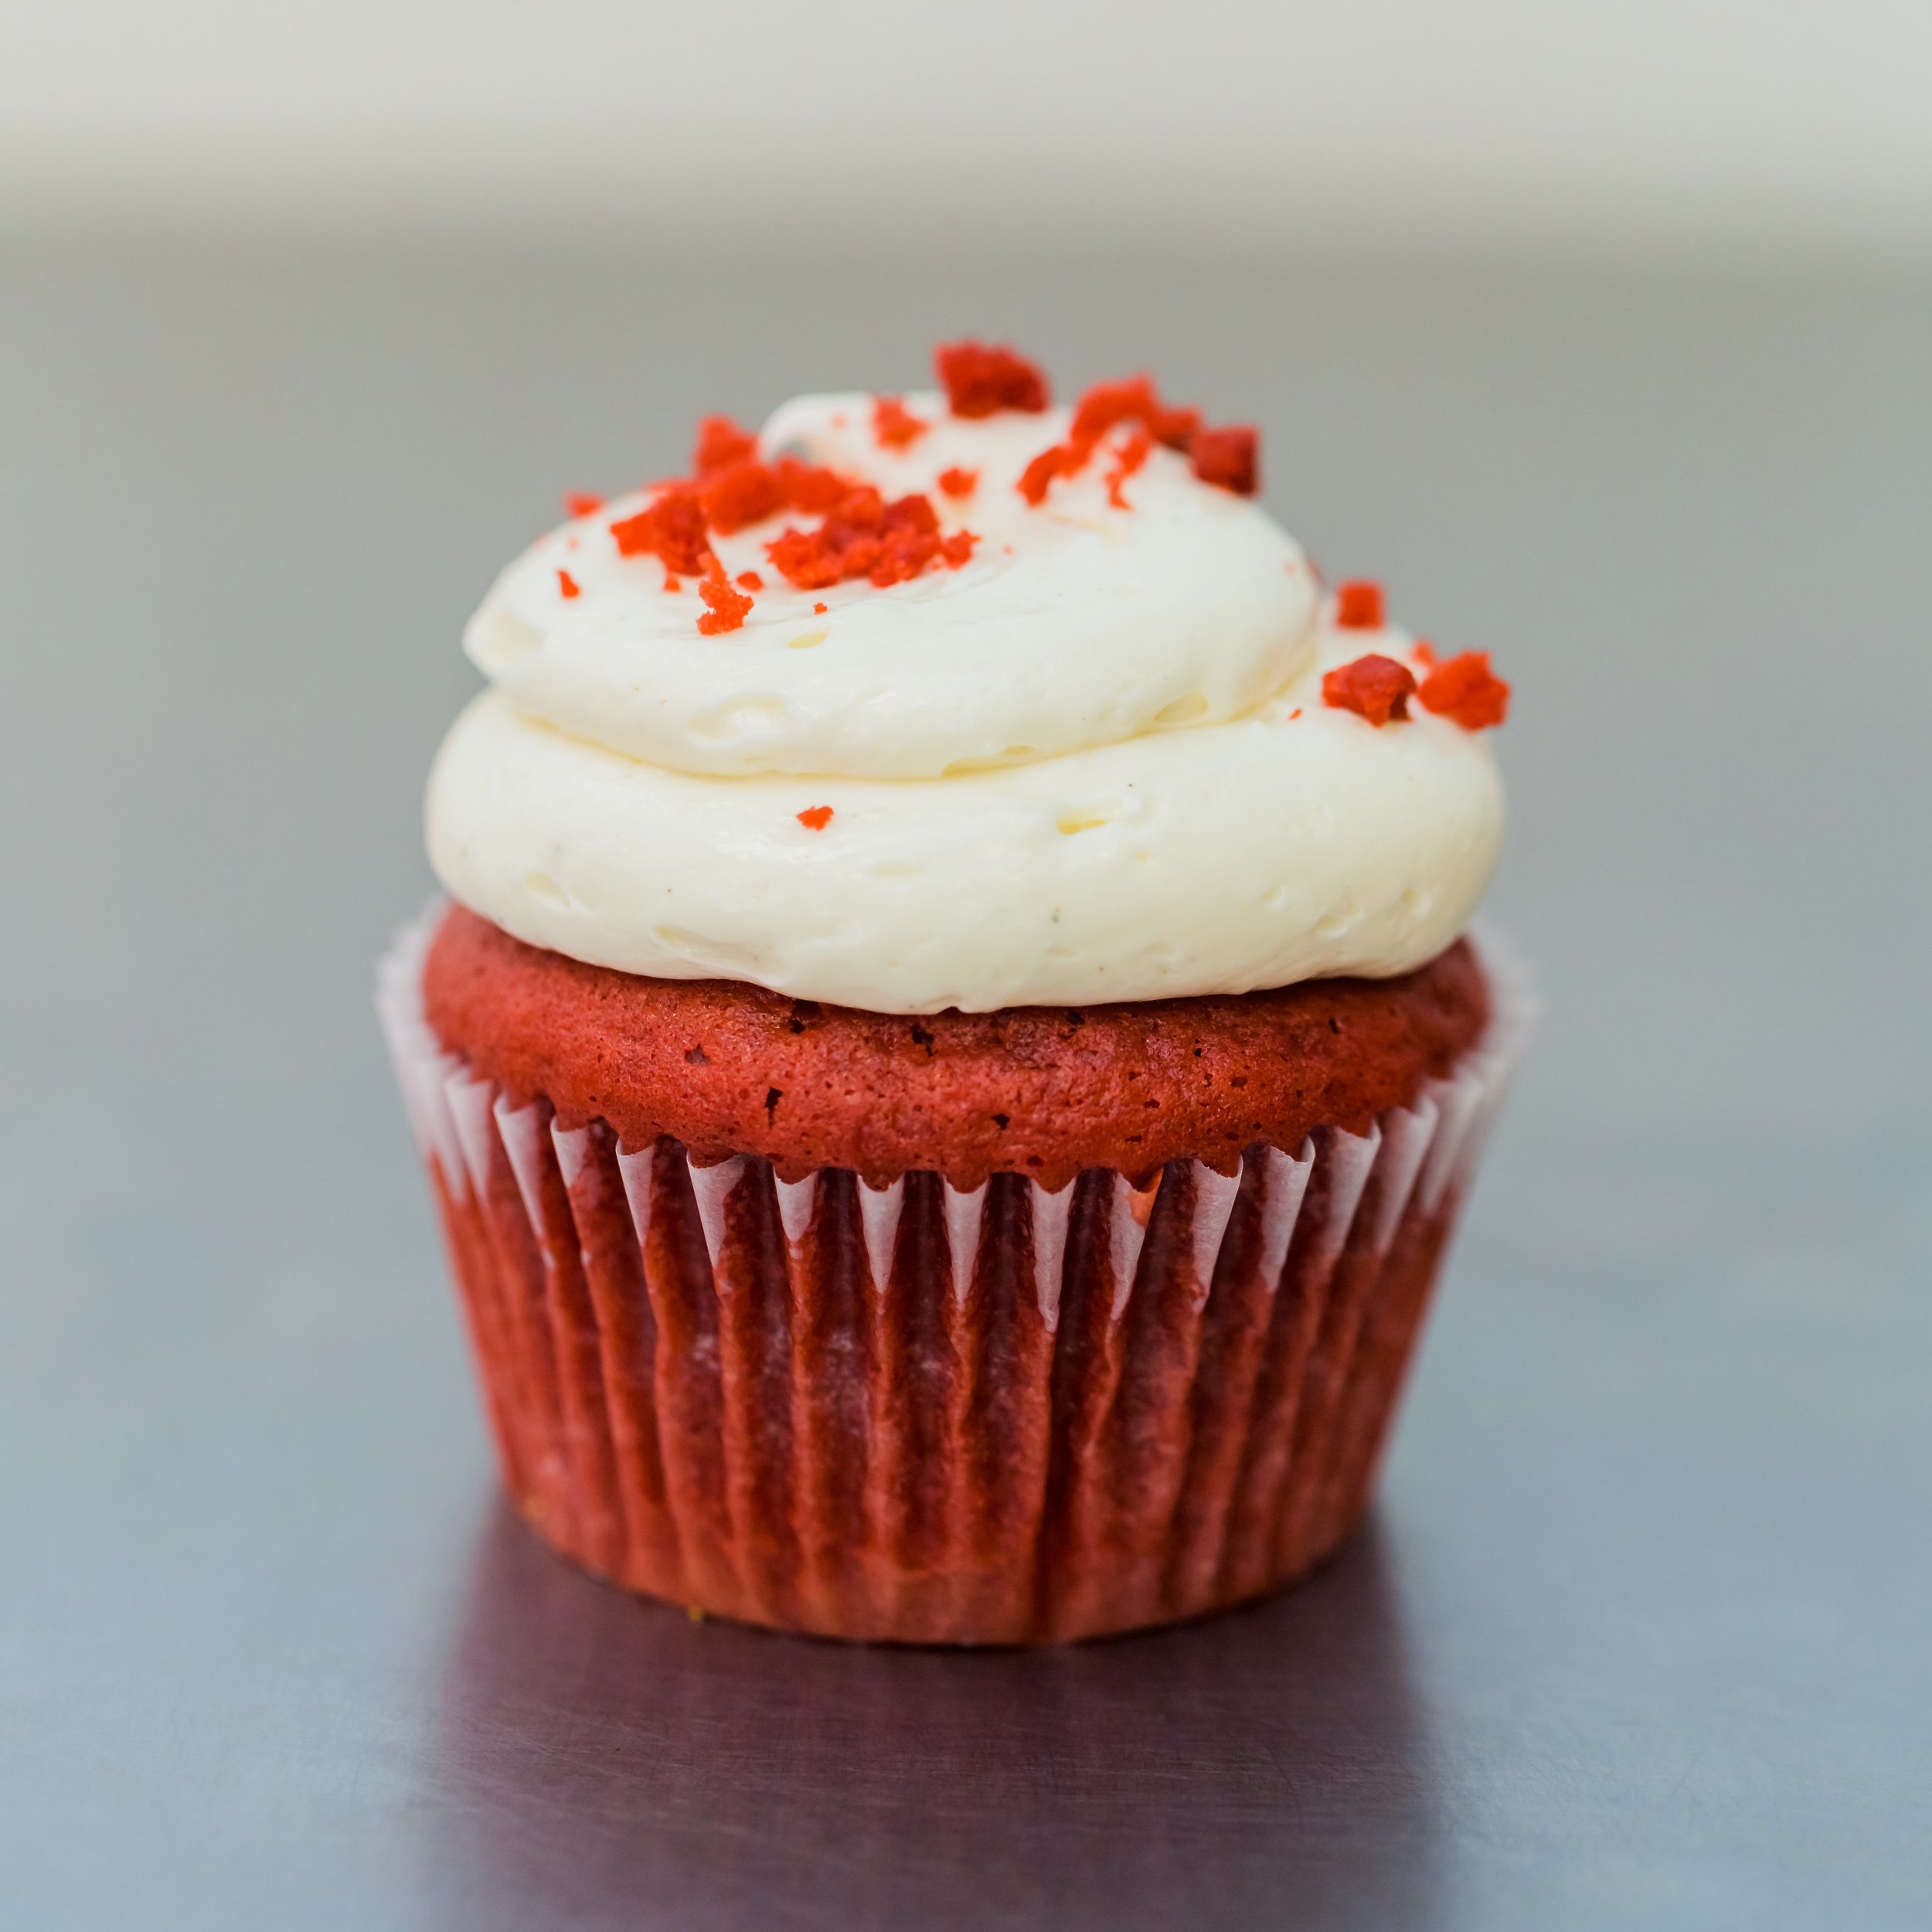 Red Velvet - Red velvet cake filled with a cream cheese frosting, frosted with vanilla bean buttercream and garnished with red velvet crumbs